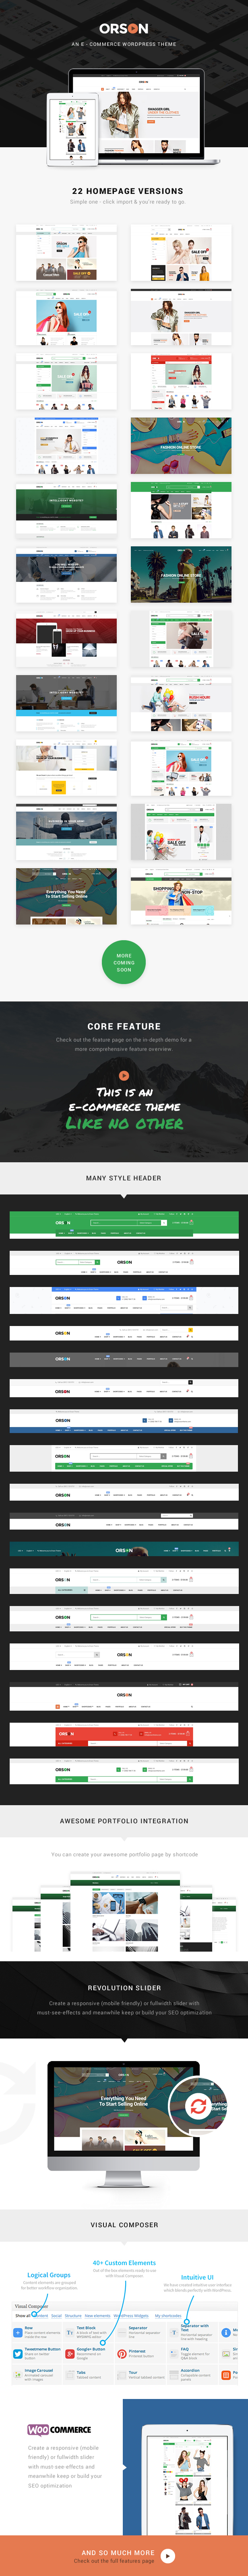 Orson - Innovative Ecommerce WordPress Theme for Online Stores - 3